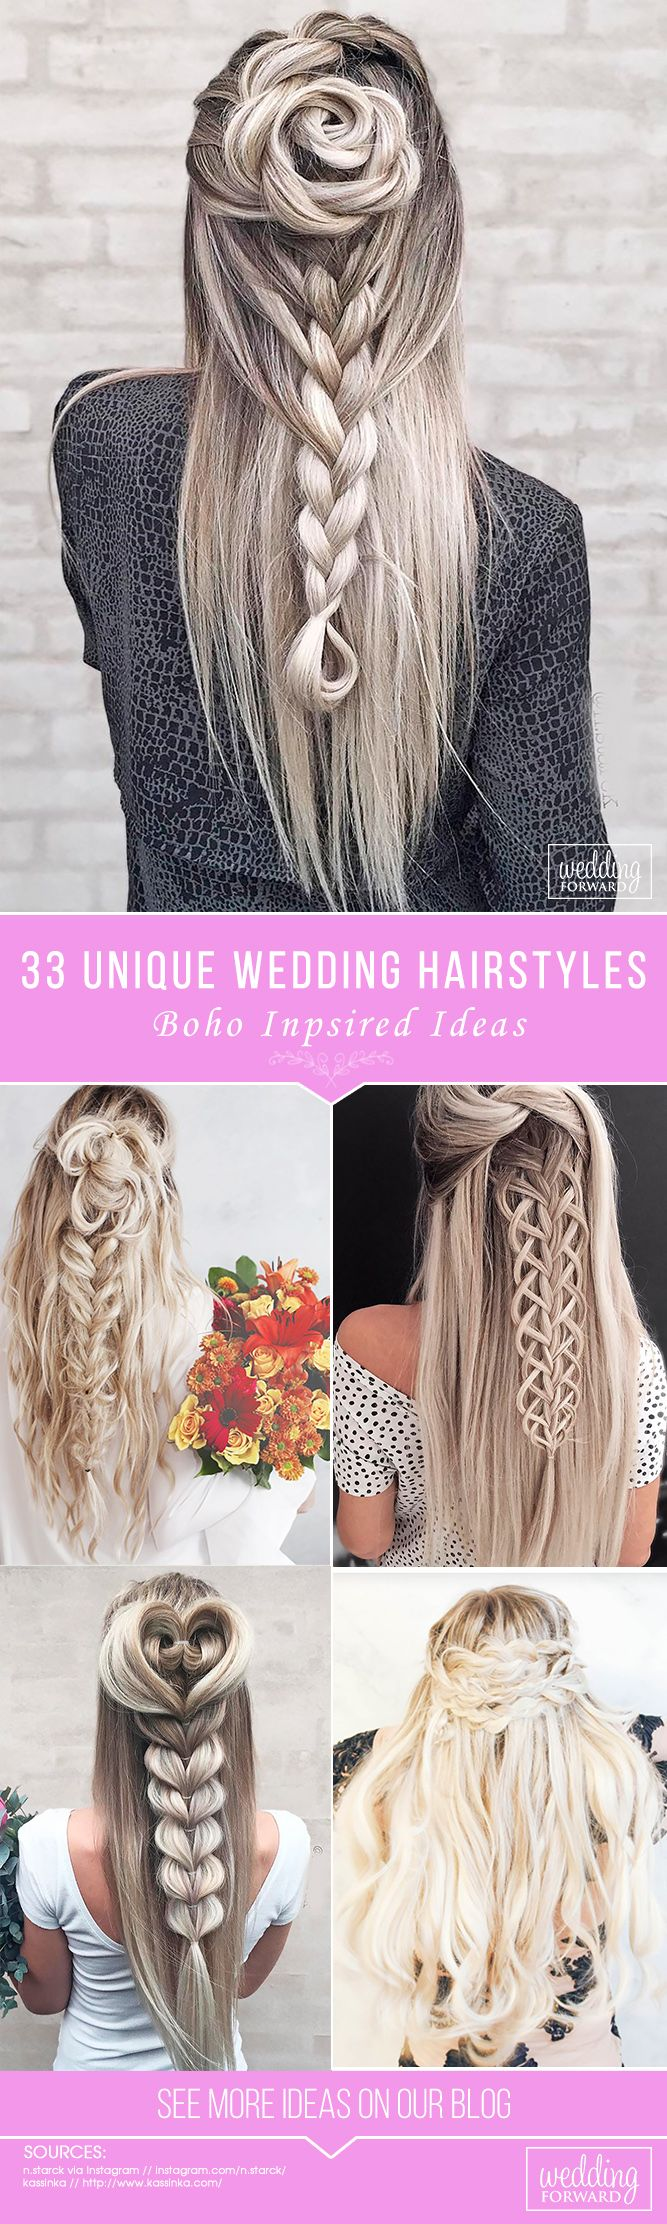 33 Creative & Unique Wedding Hairstyles ❤ From creative hairstyles with romant...